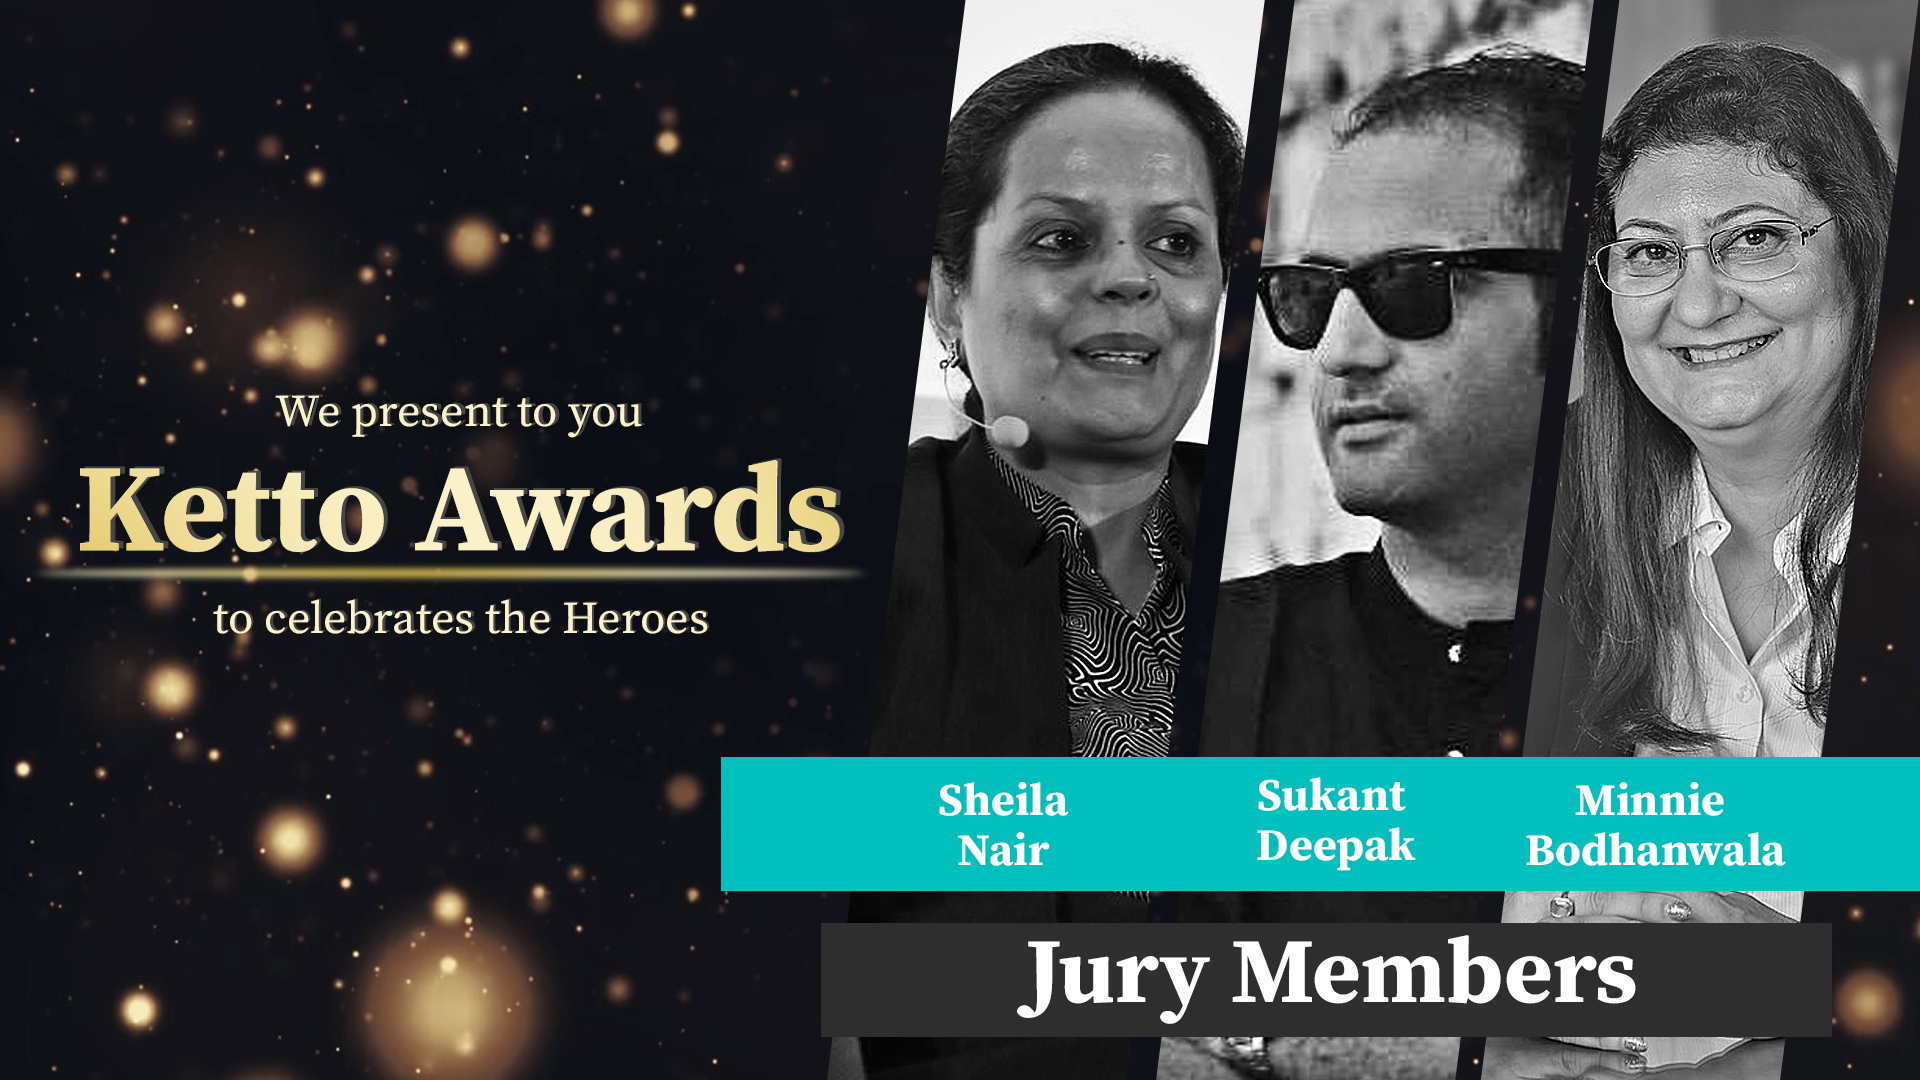 Ketto Awards 2020 Jury